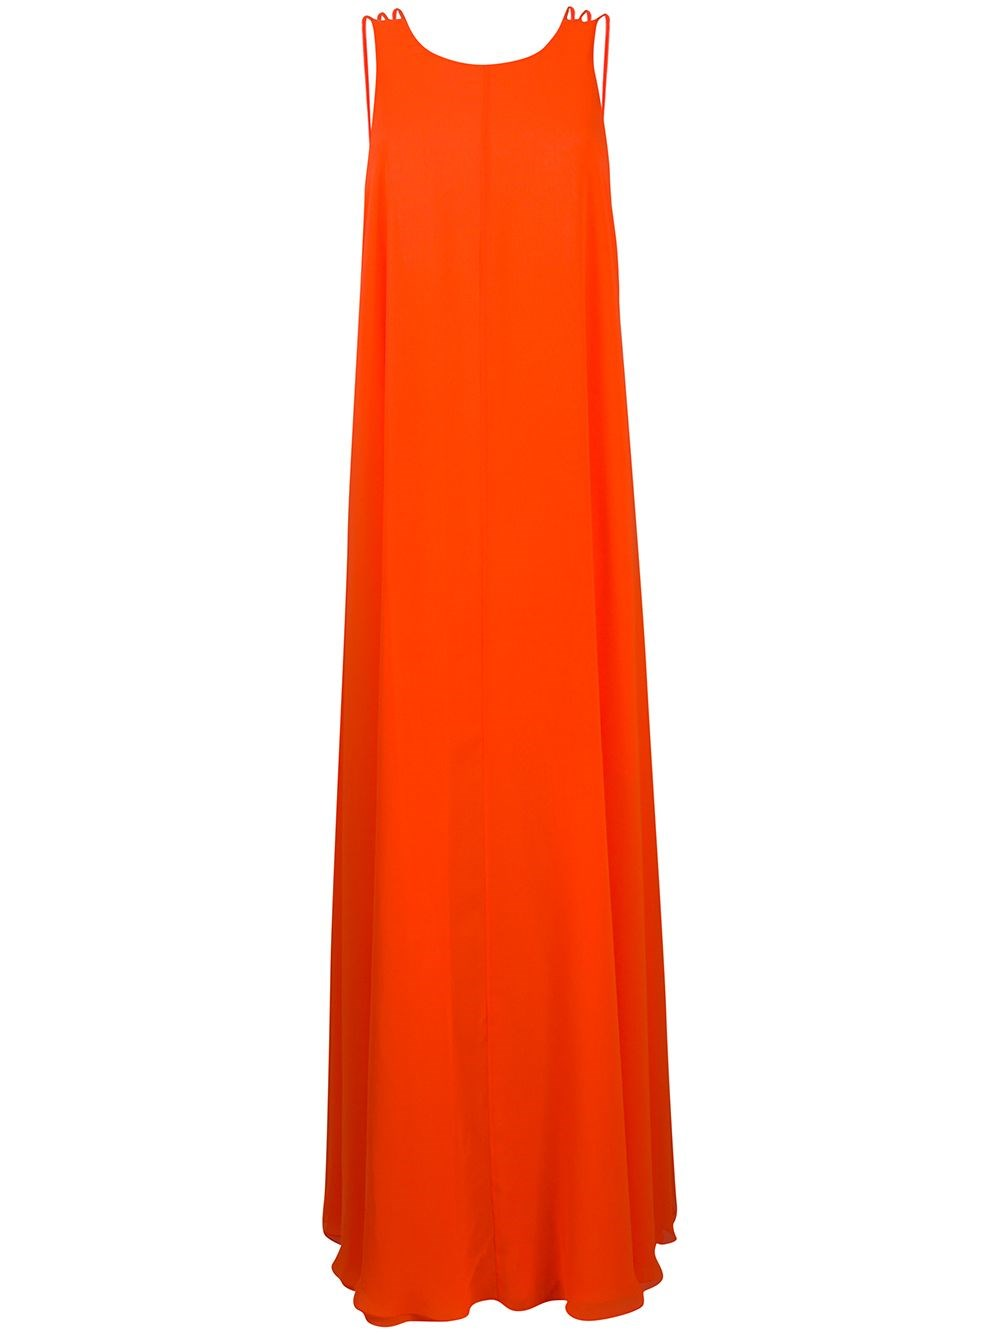 HALPERN Orange Long Dress